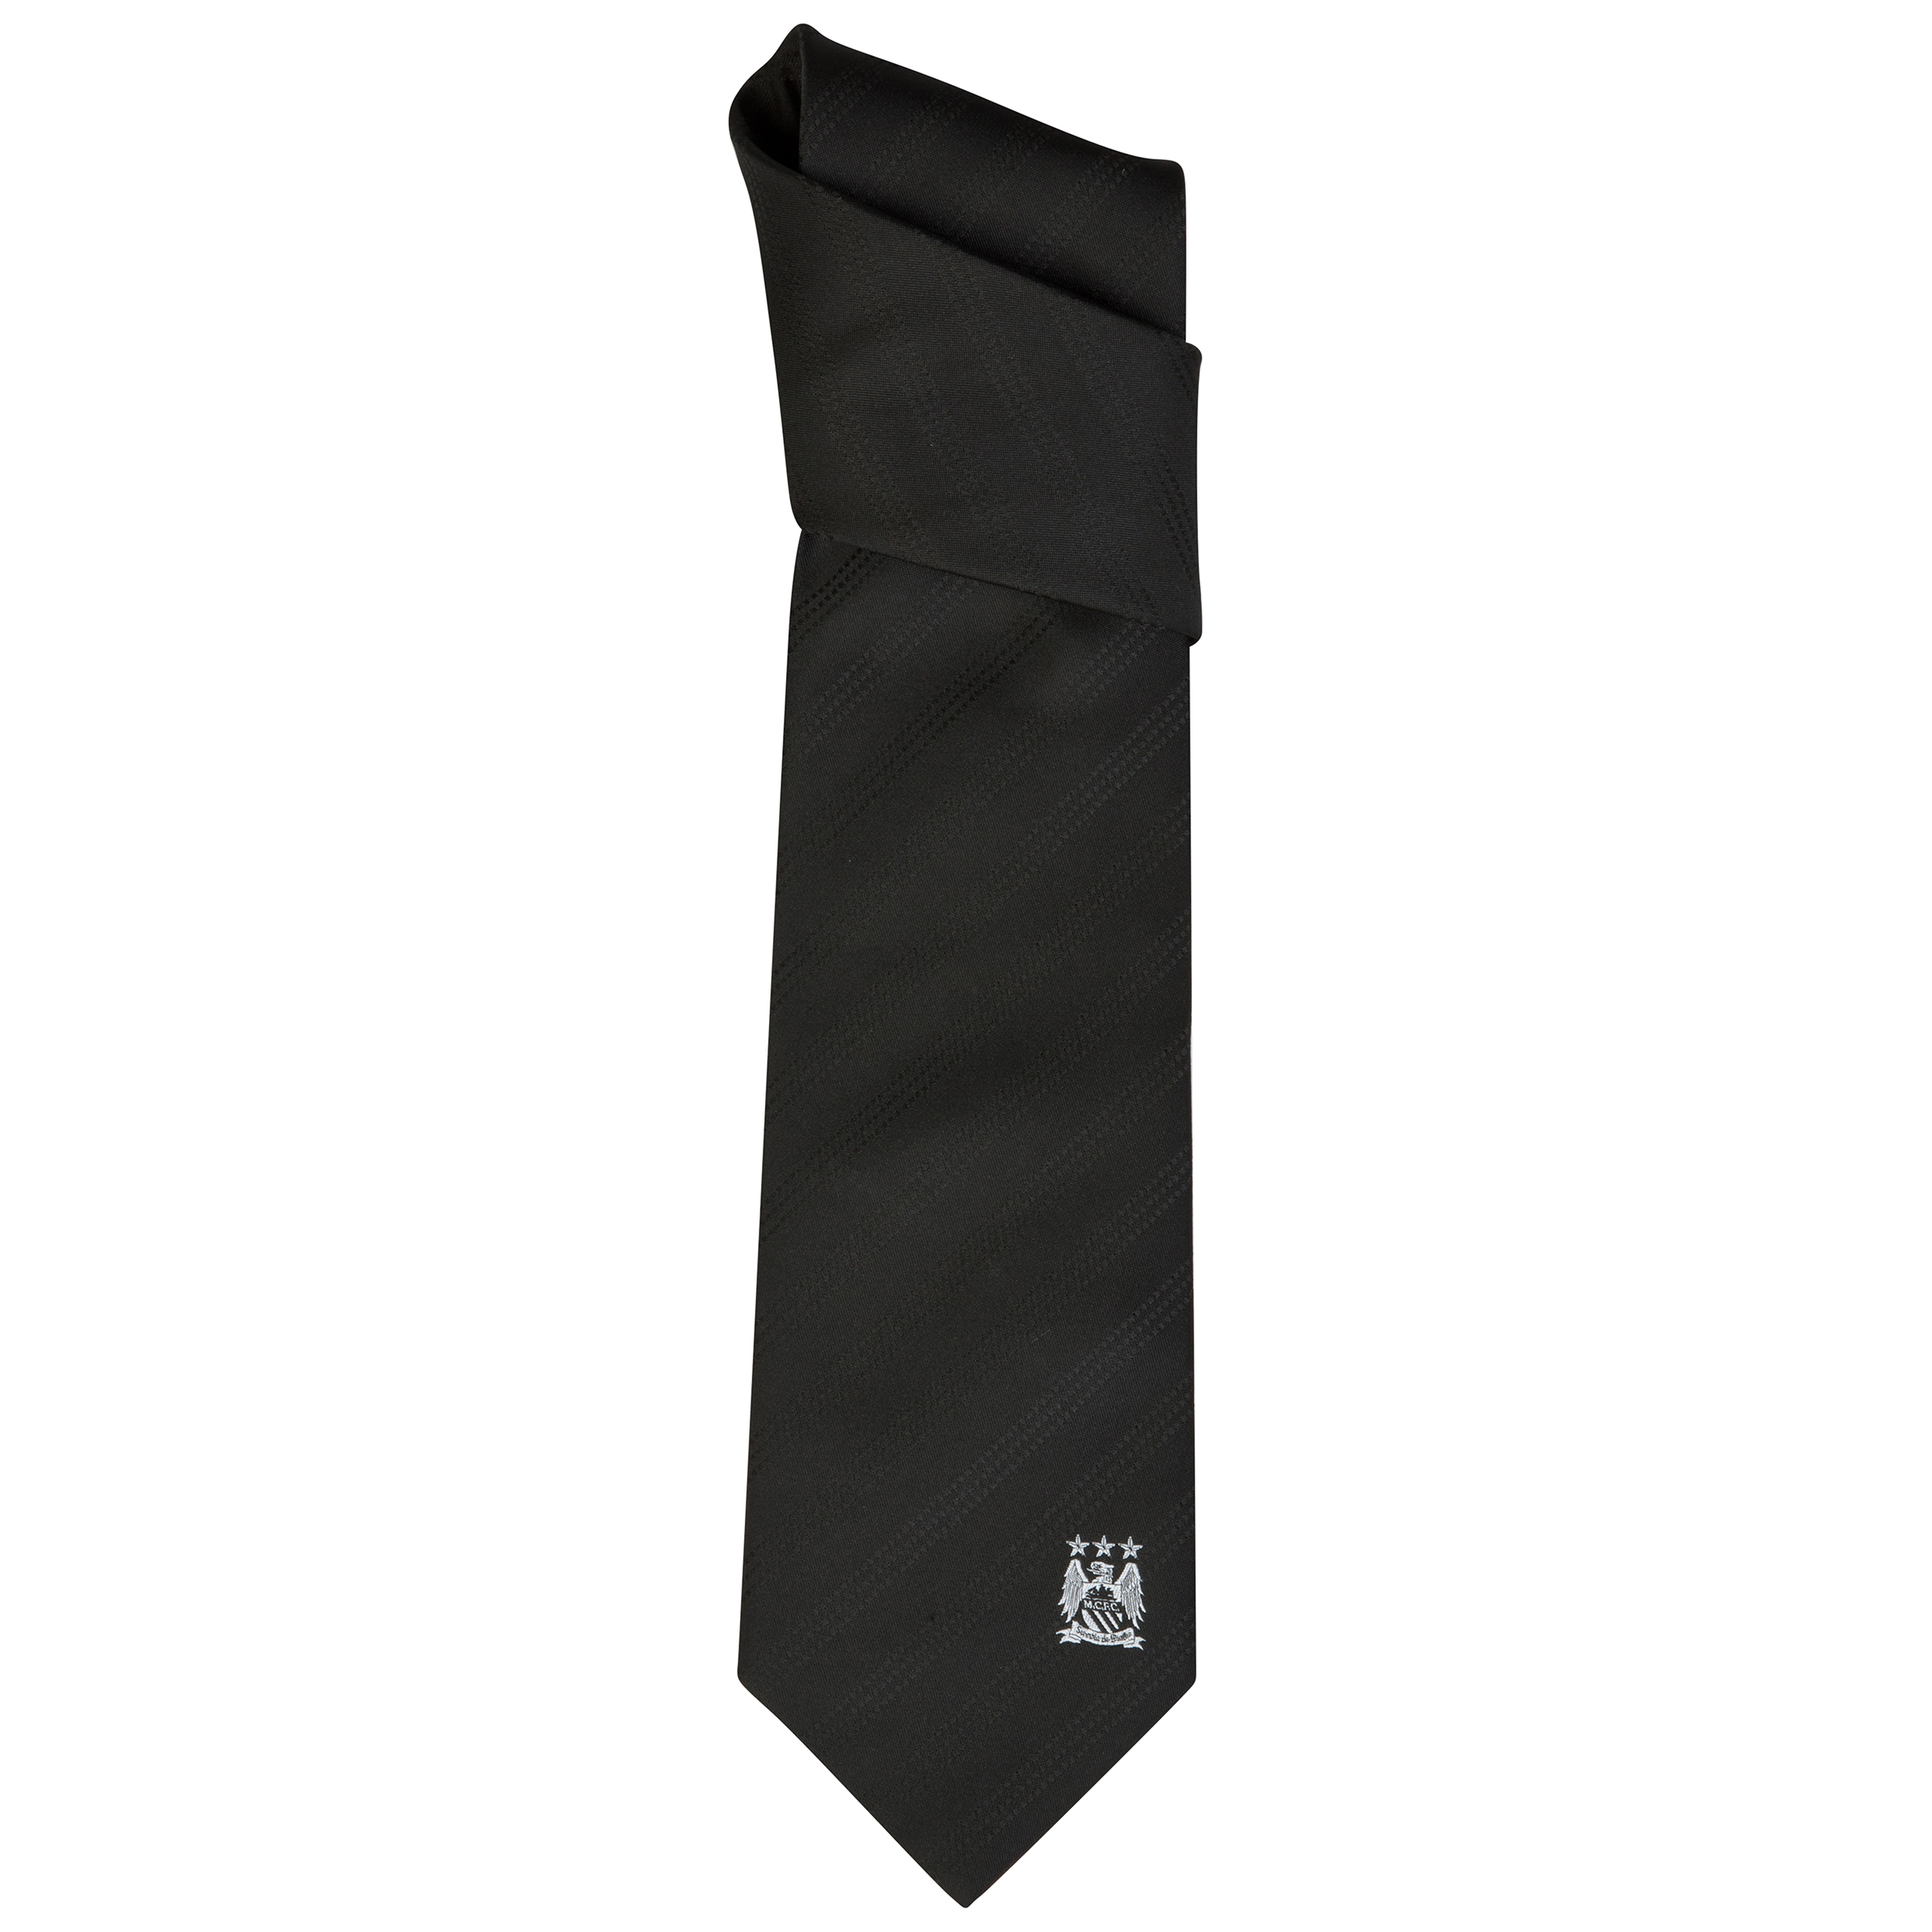 Manchester City Plain Black Tie 2 Tone